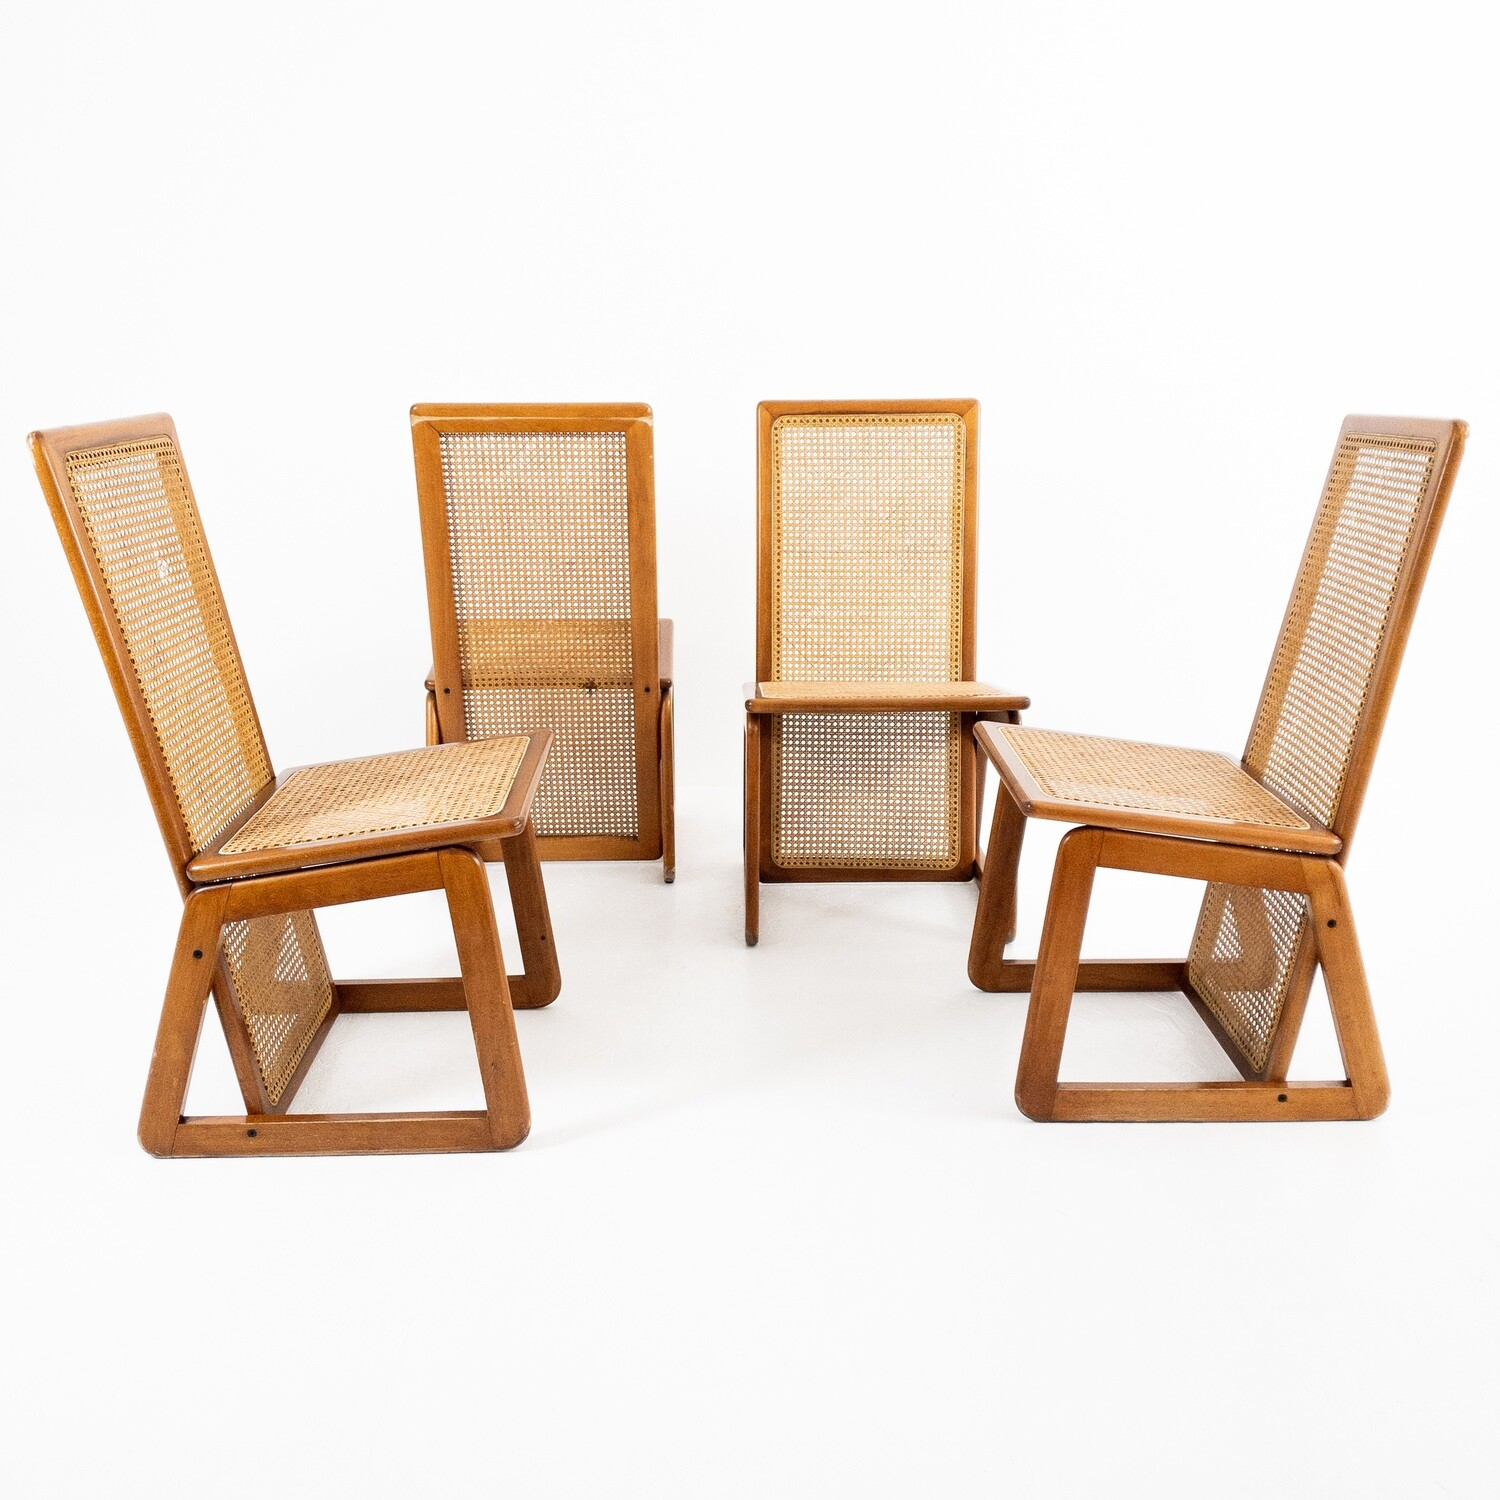 Set of 4 chairs in wood and straw from Vienna, Denmark 70s